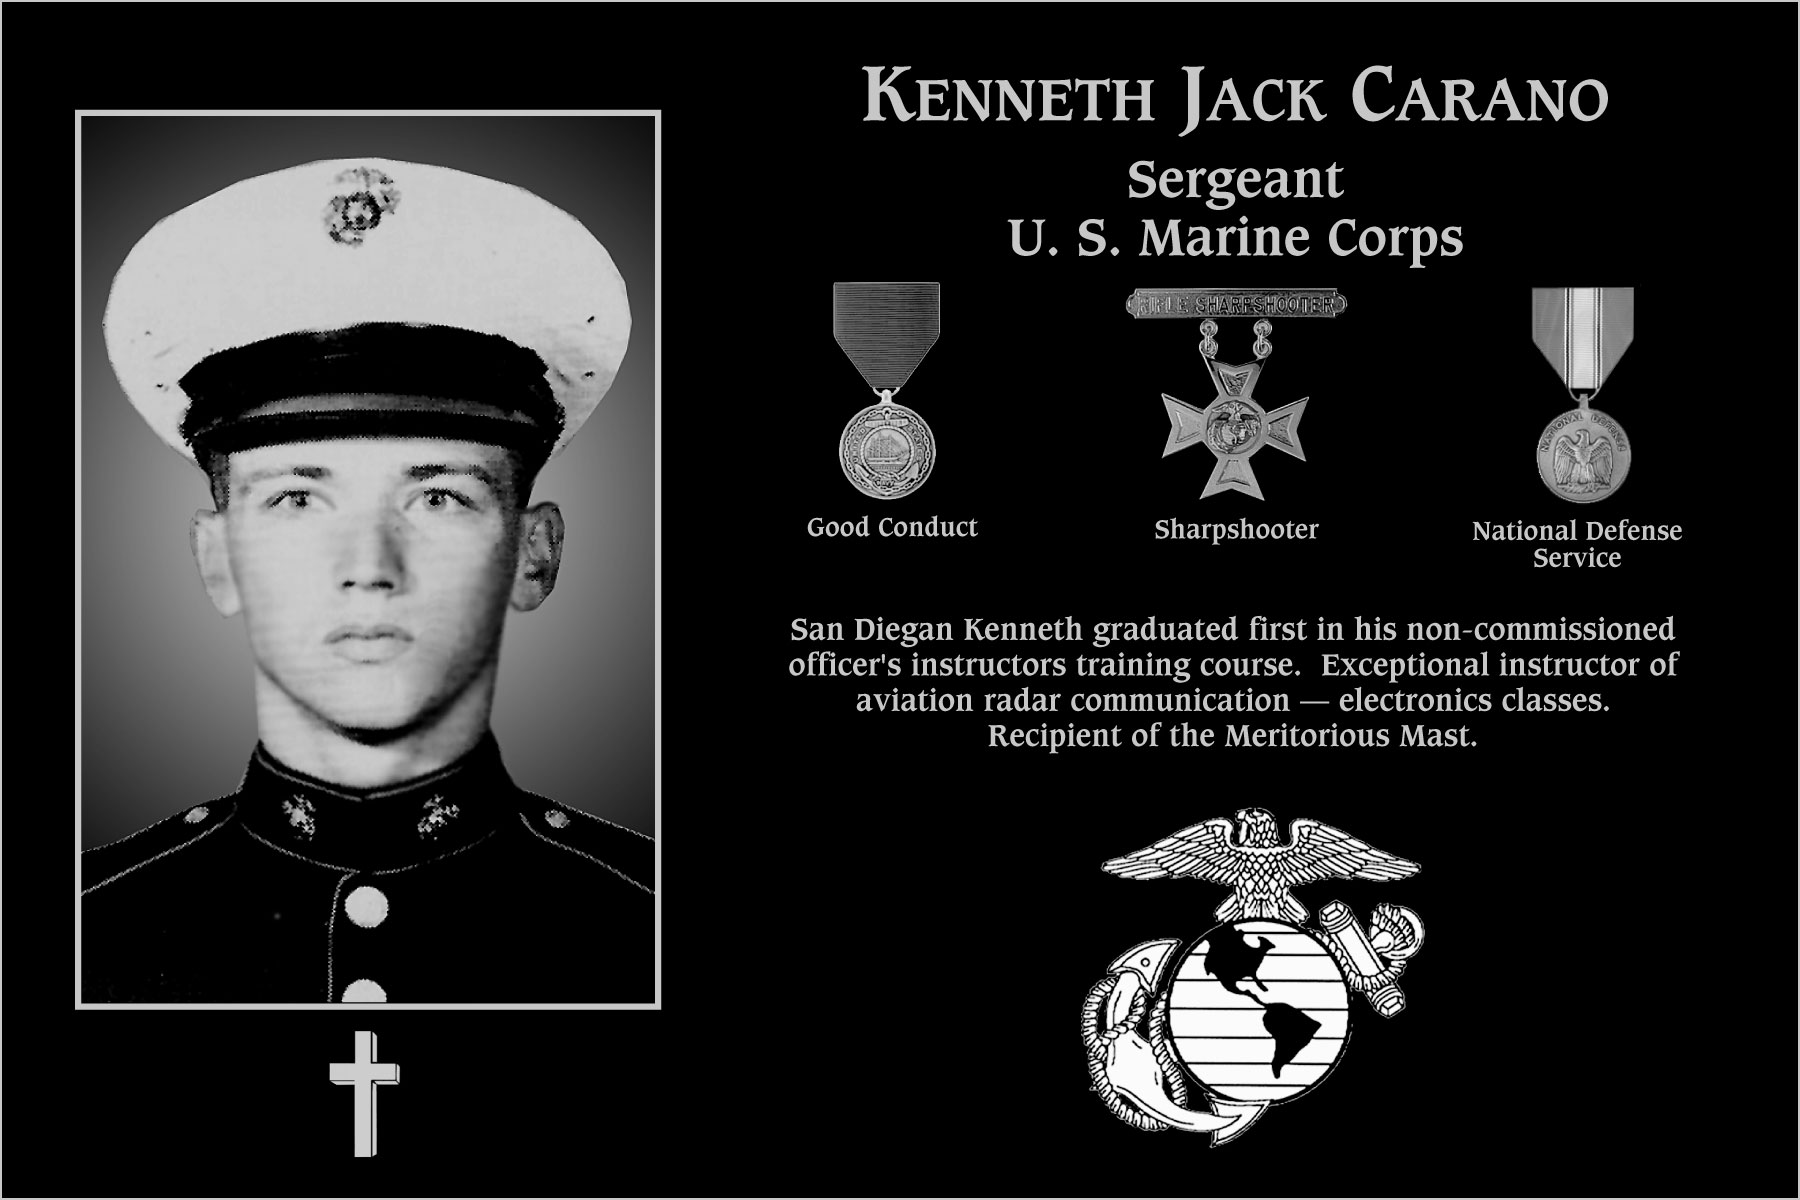 Kenneth Jack Carano